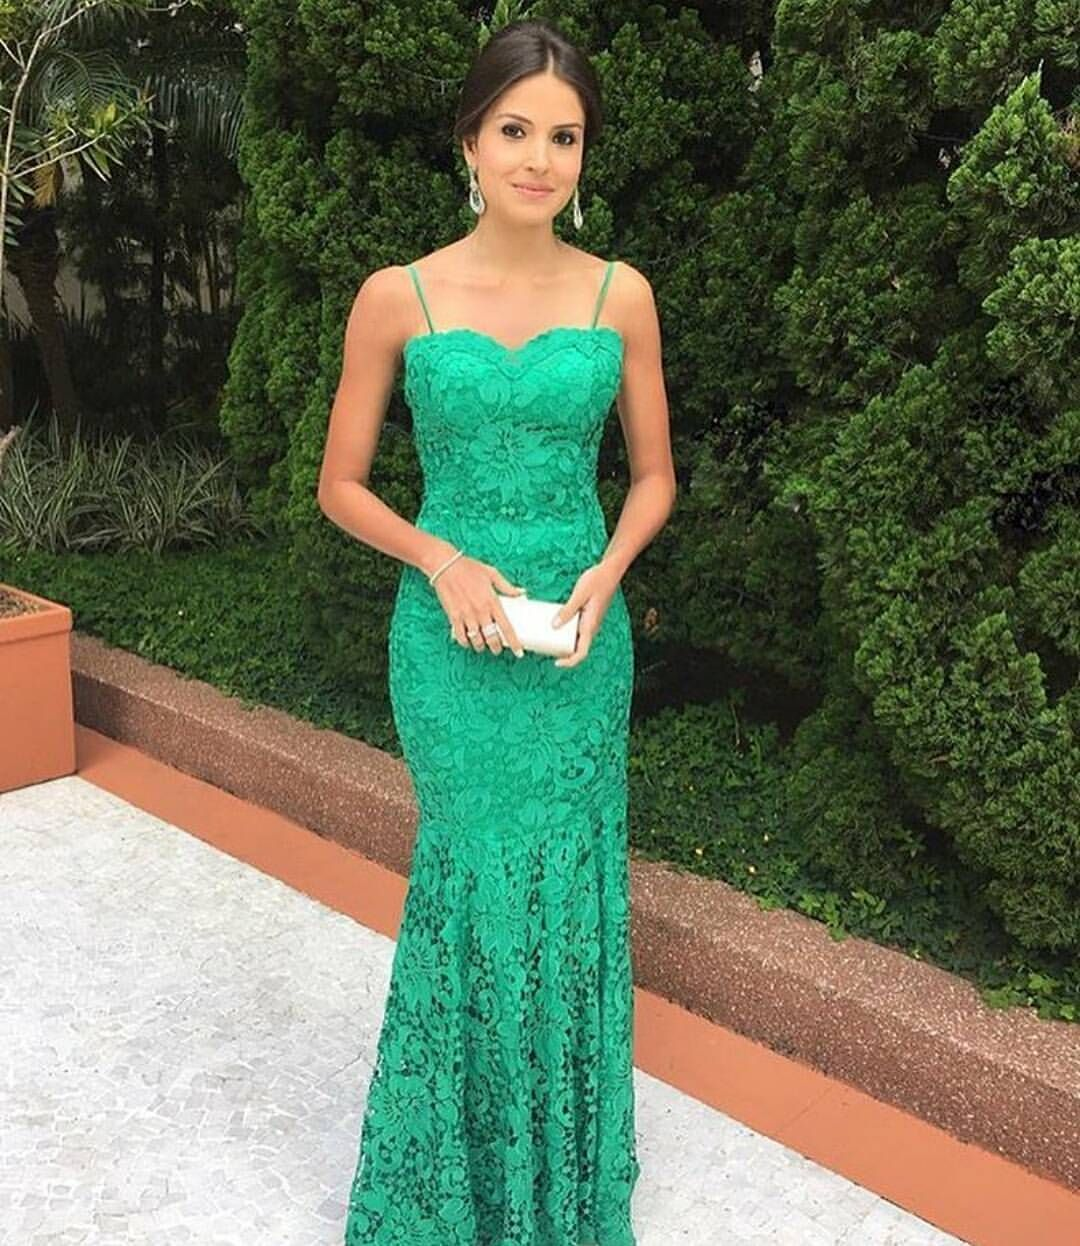 Pin by María Camejo on Madrina   Pinterest   Instagram, Prom and Gowns